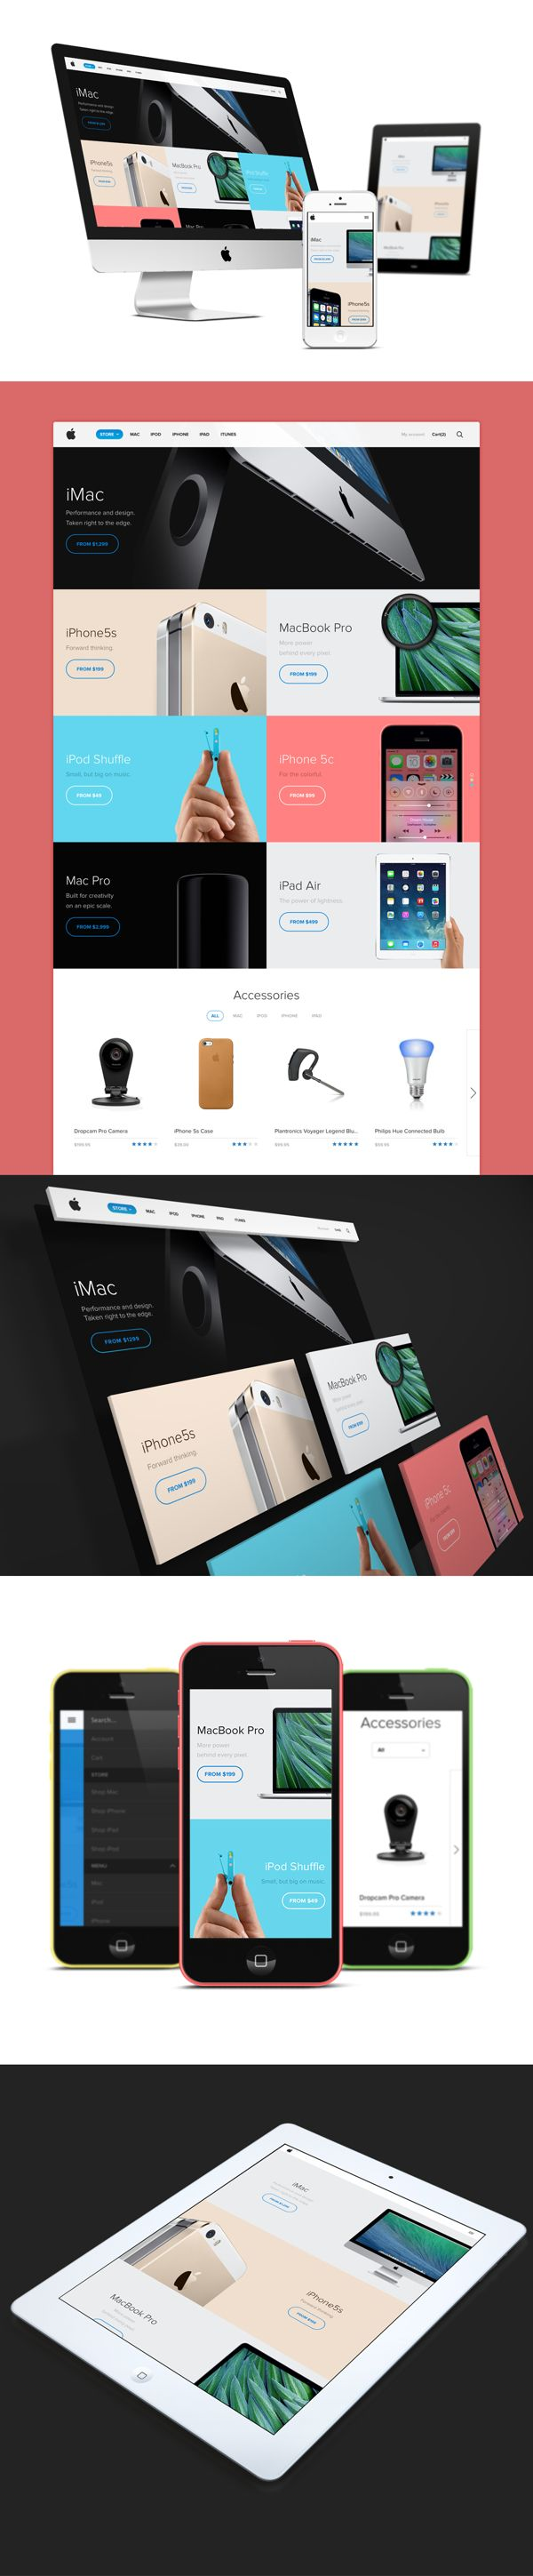 Apple Store Redesign on Behance